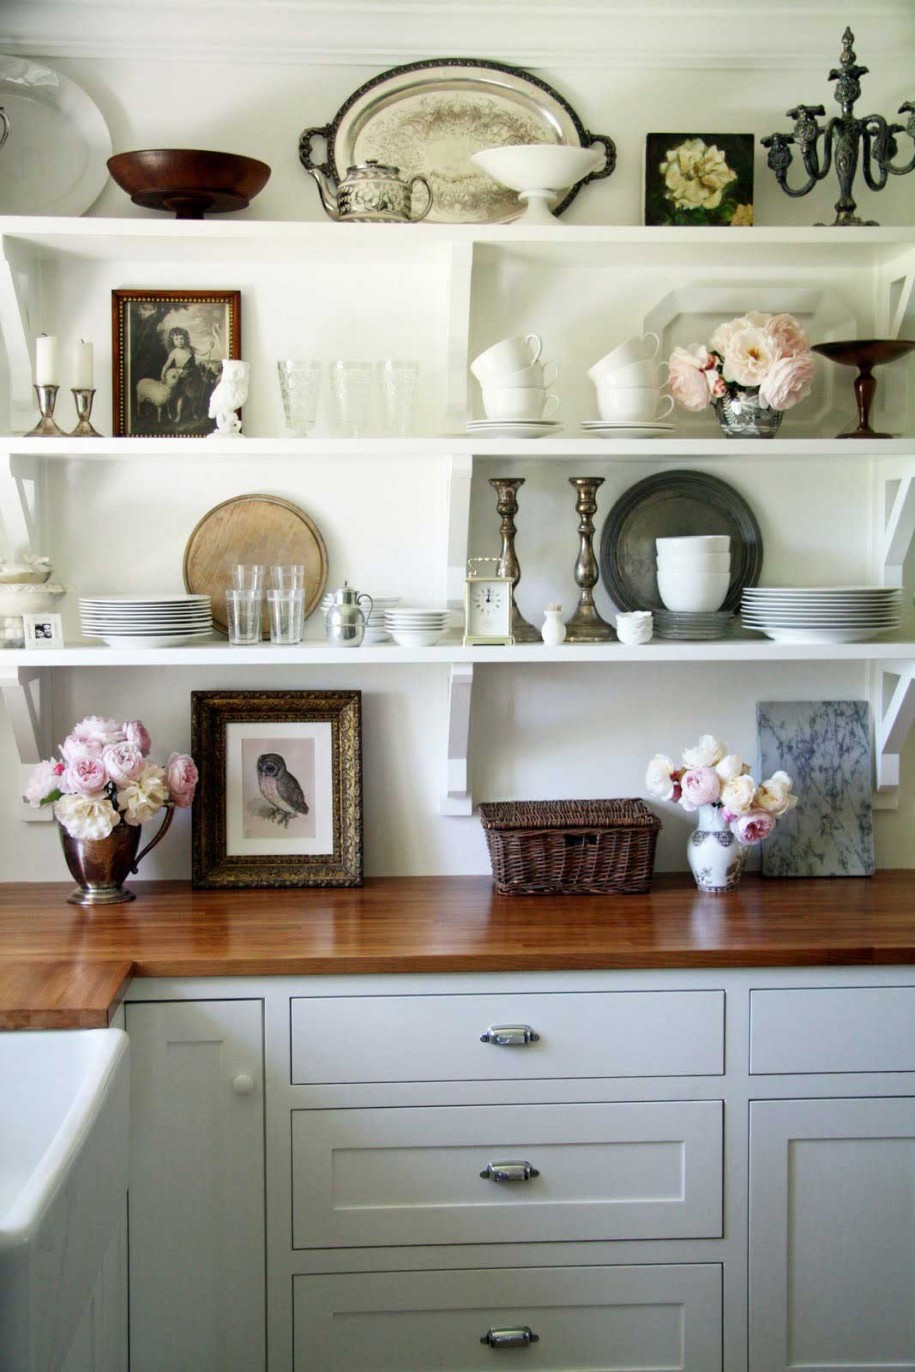 Best ideas about Antique Kitchen Decor . Save or Pin Small Vintage Kitchen Wall Decor With Shelf Idea Creative Now.